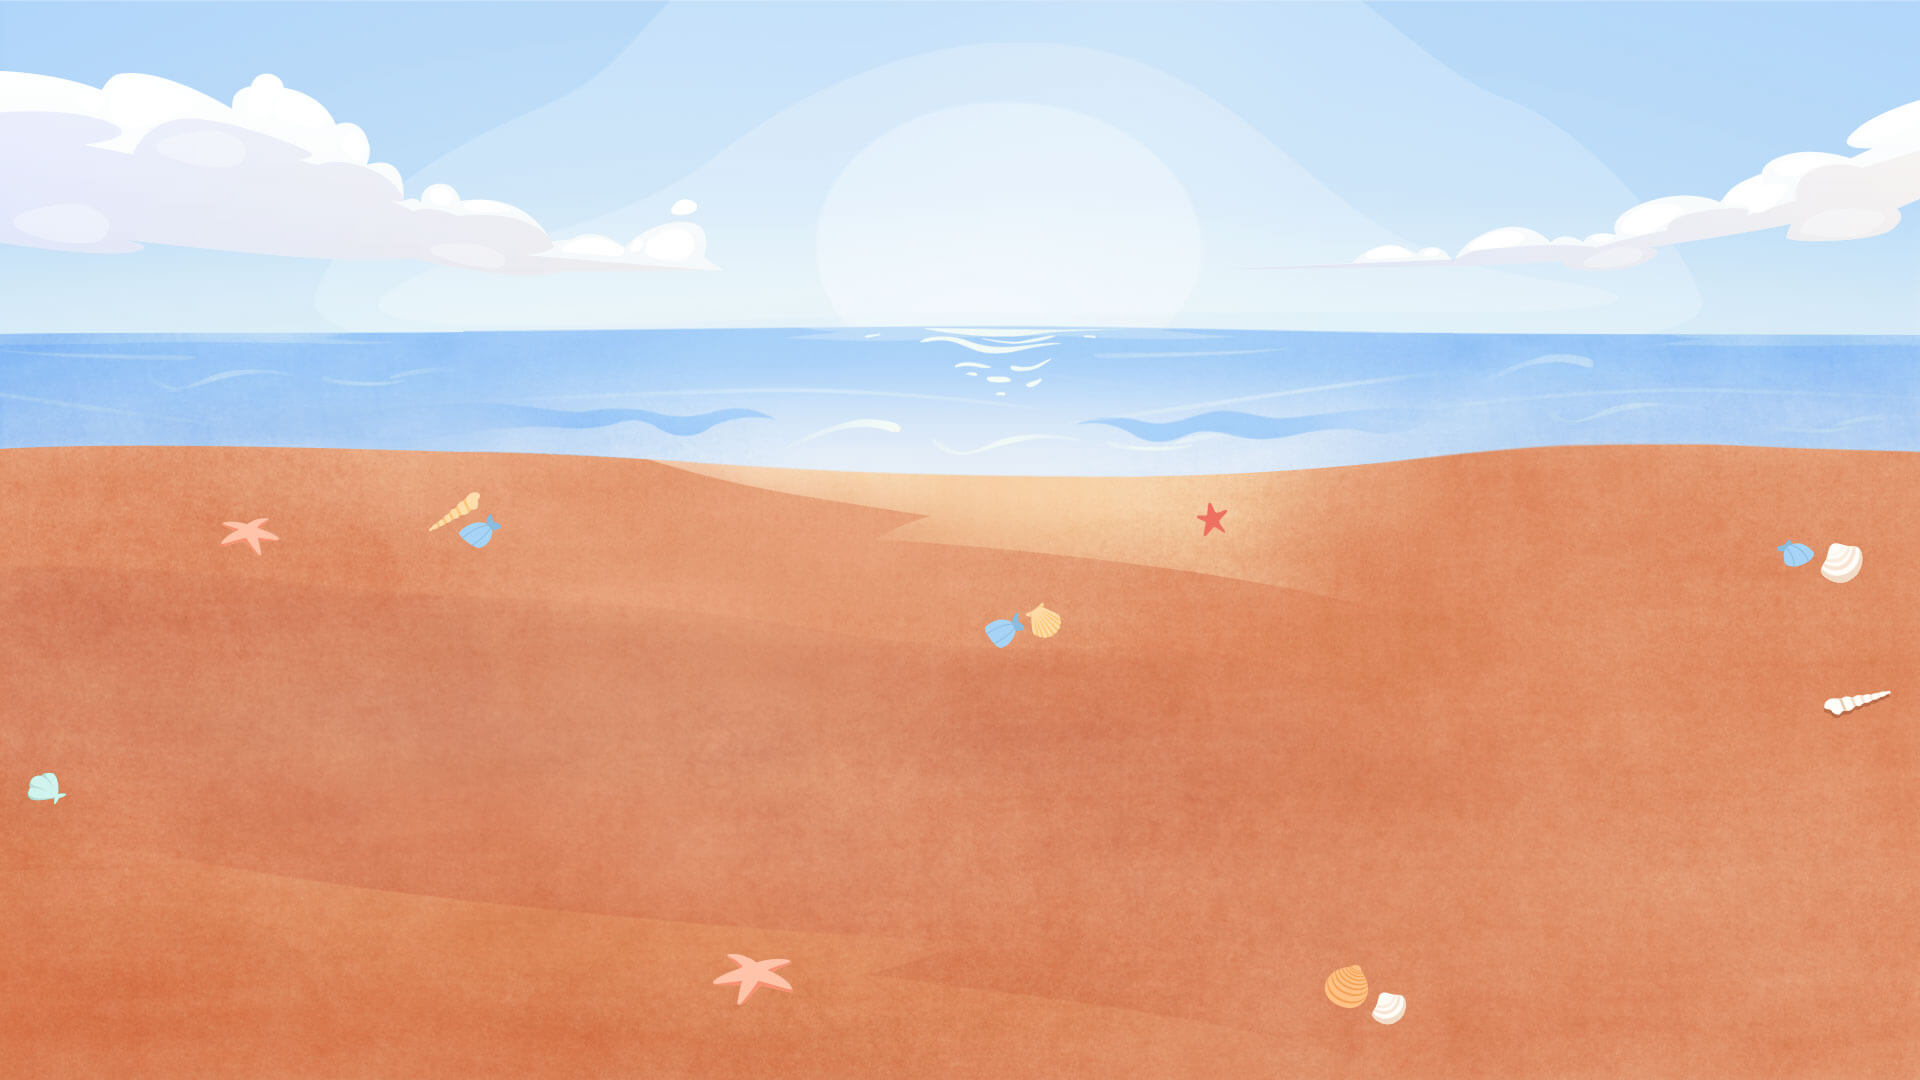 game beach background image